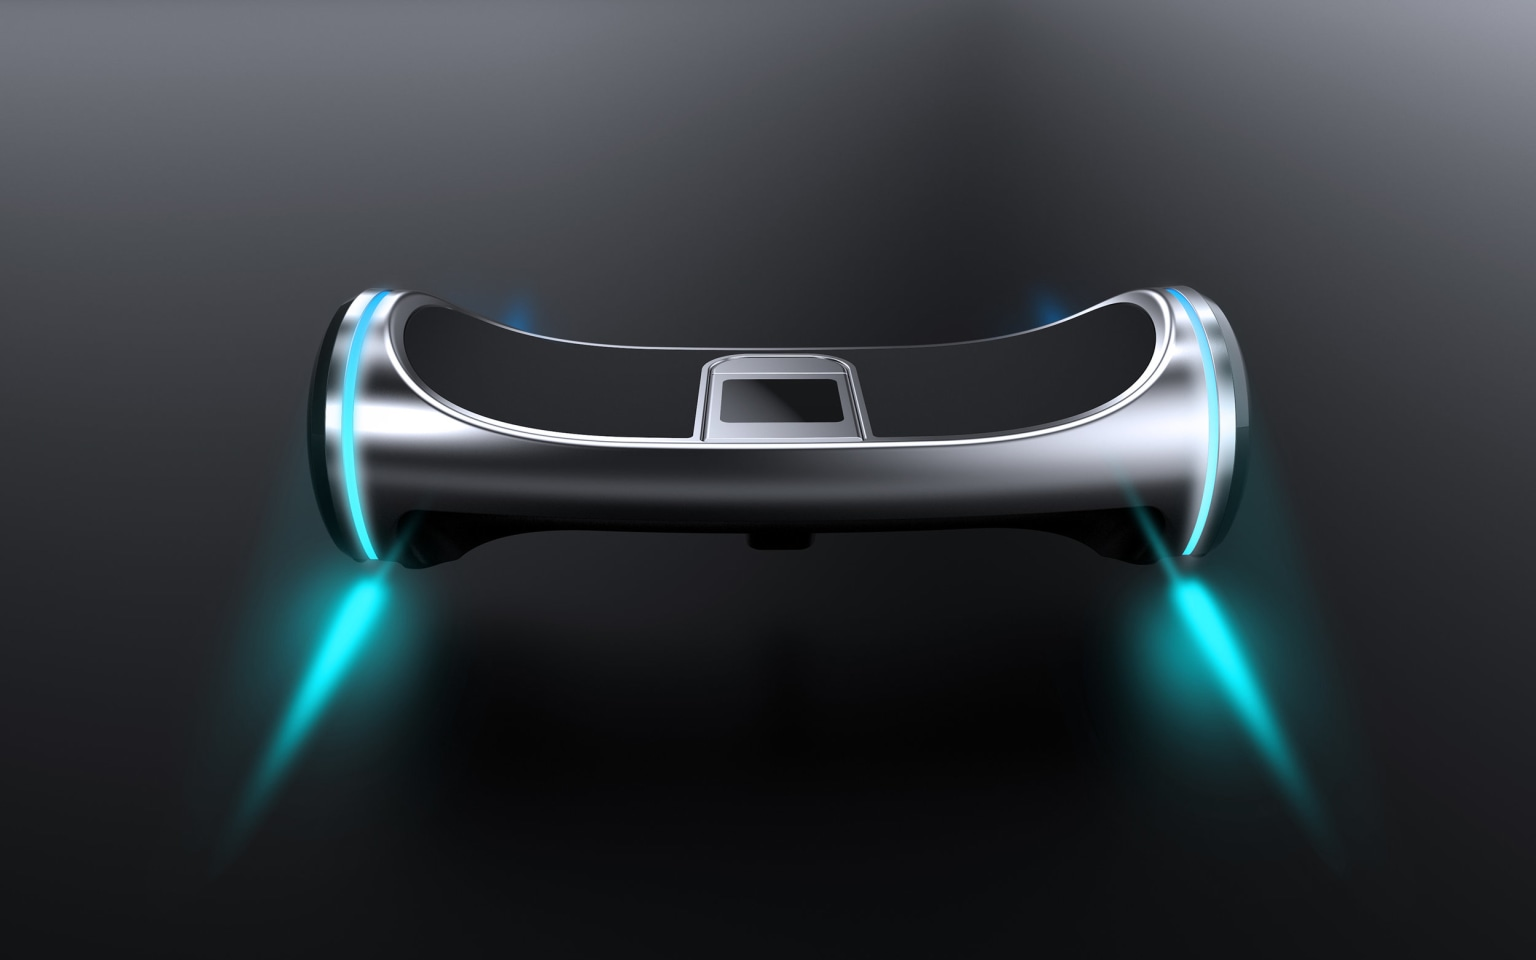 Hoverboard 2.0